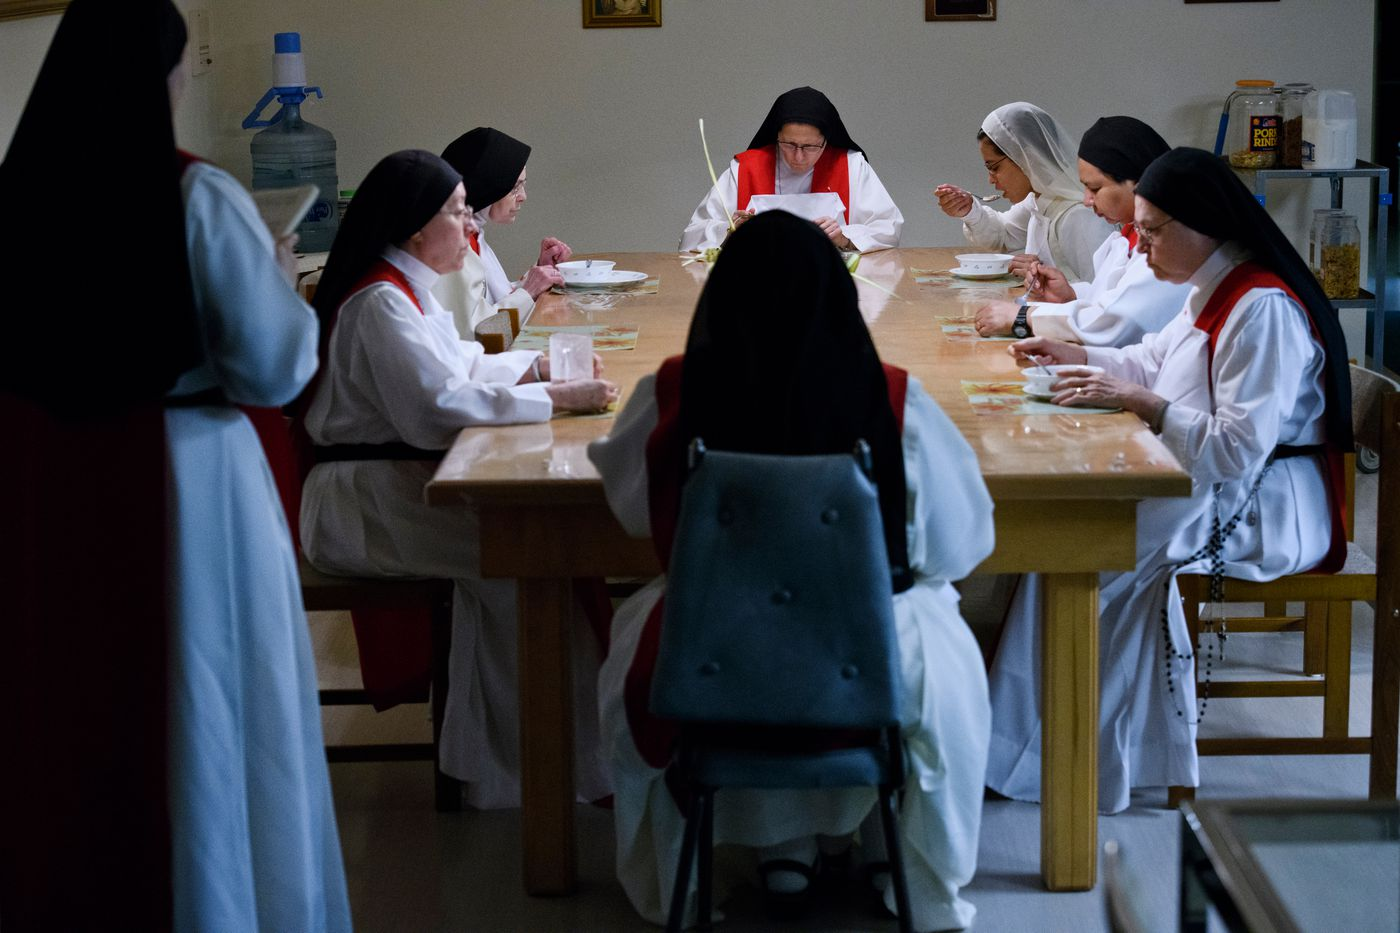 The Sisters of Perpetual Adoration eat breakfast in silence after morning prayers while Sister Miriam de Jesus Cantu, left, stands and reads on March 26, 2018. (Marc Lester / ADN)